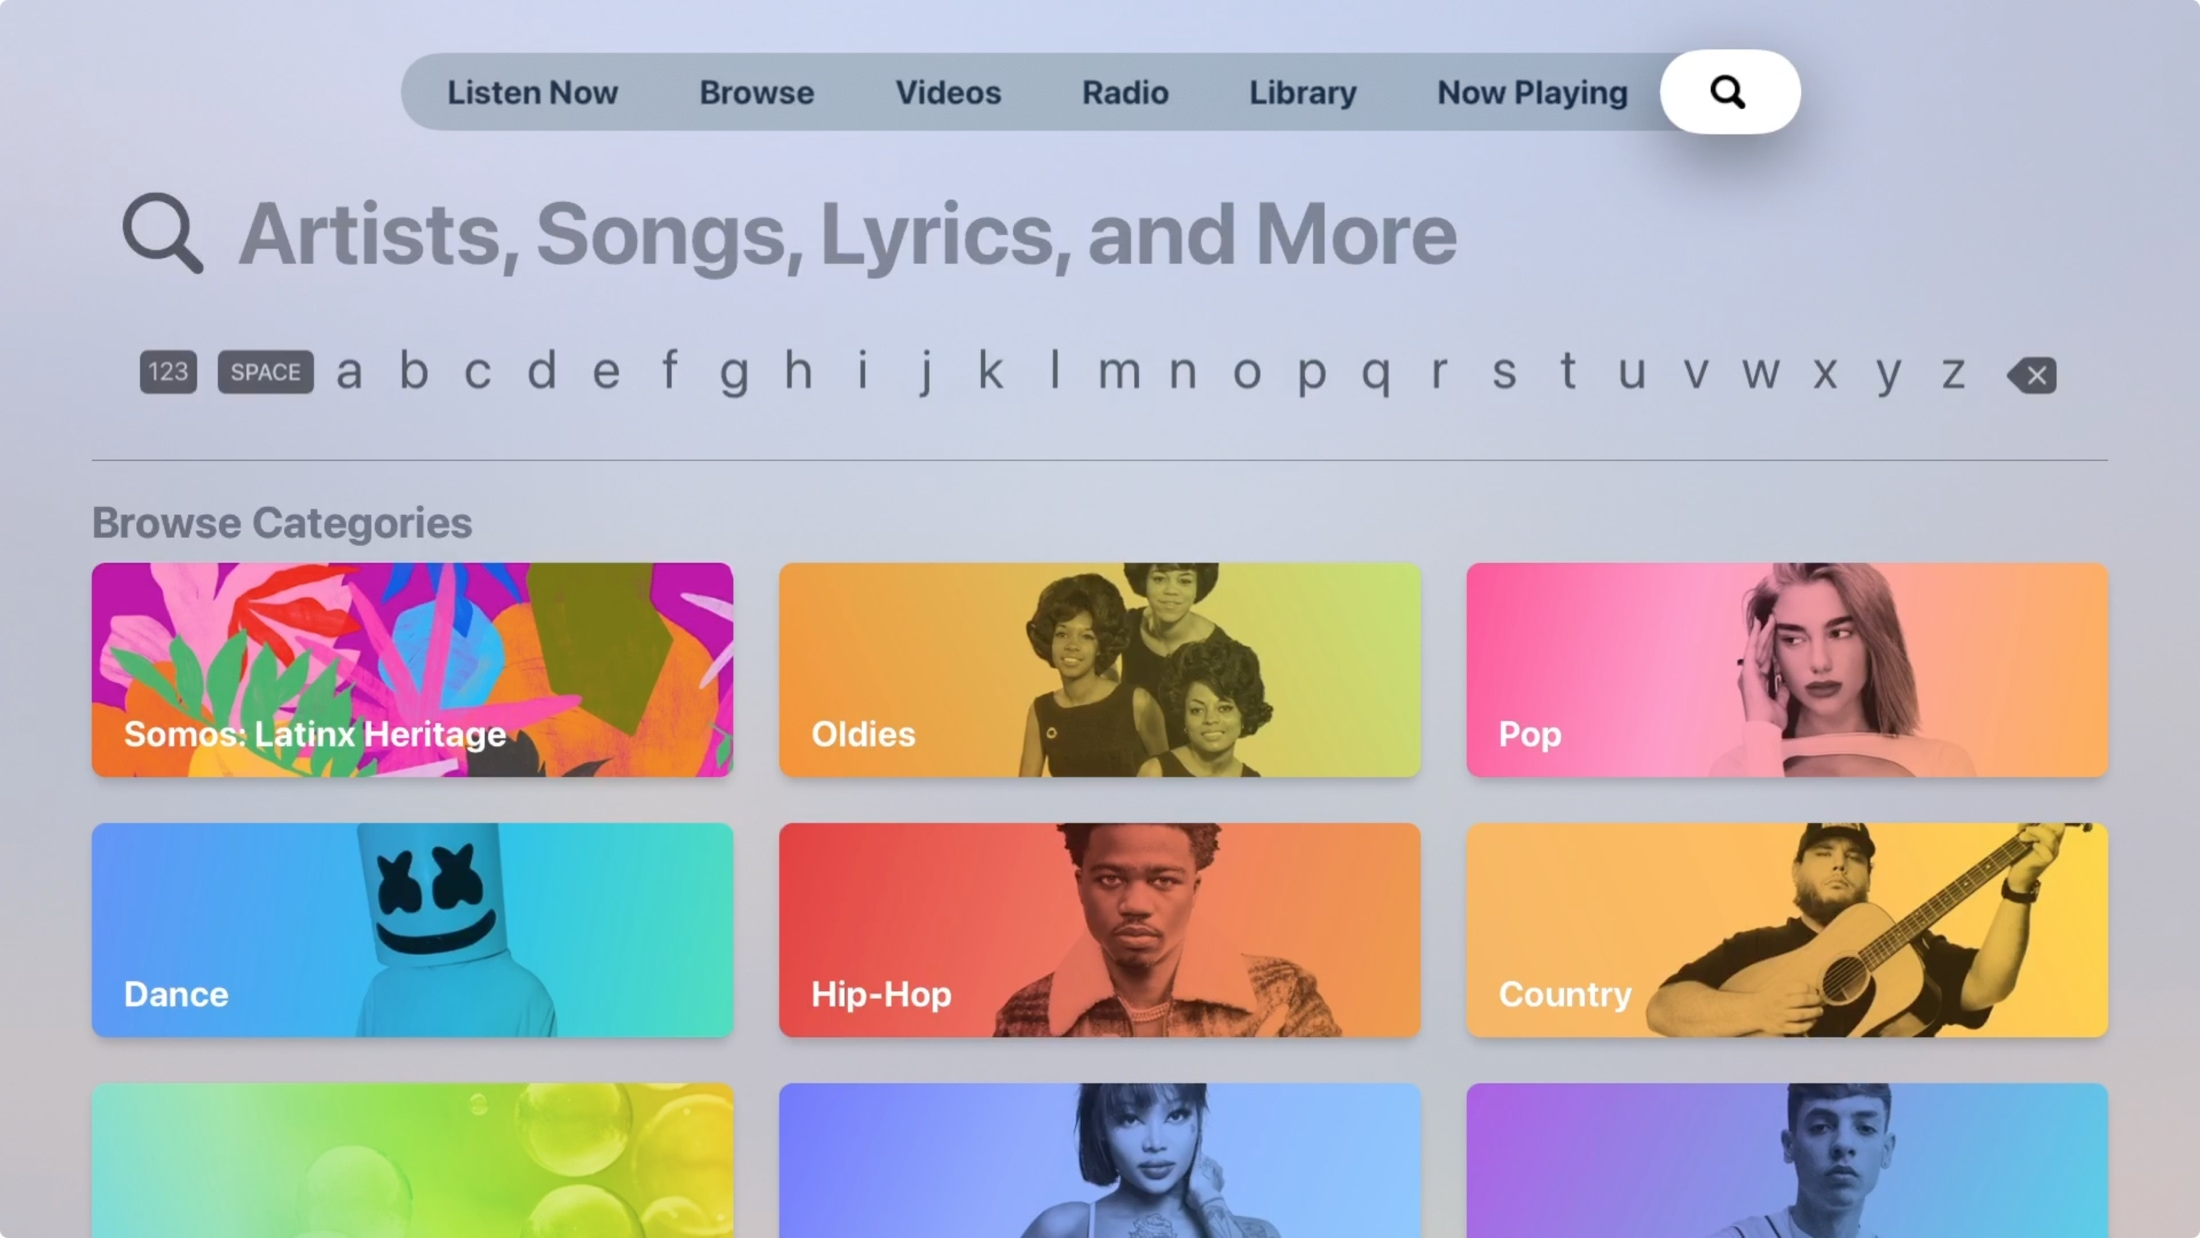 Search Music on Apple TV